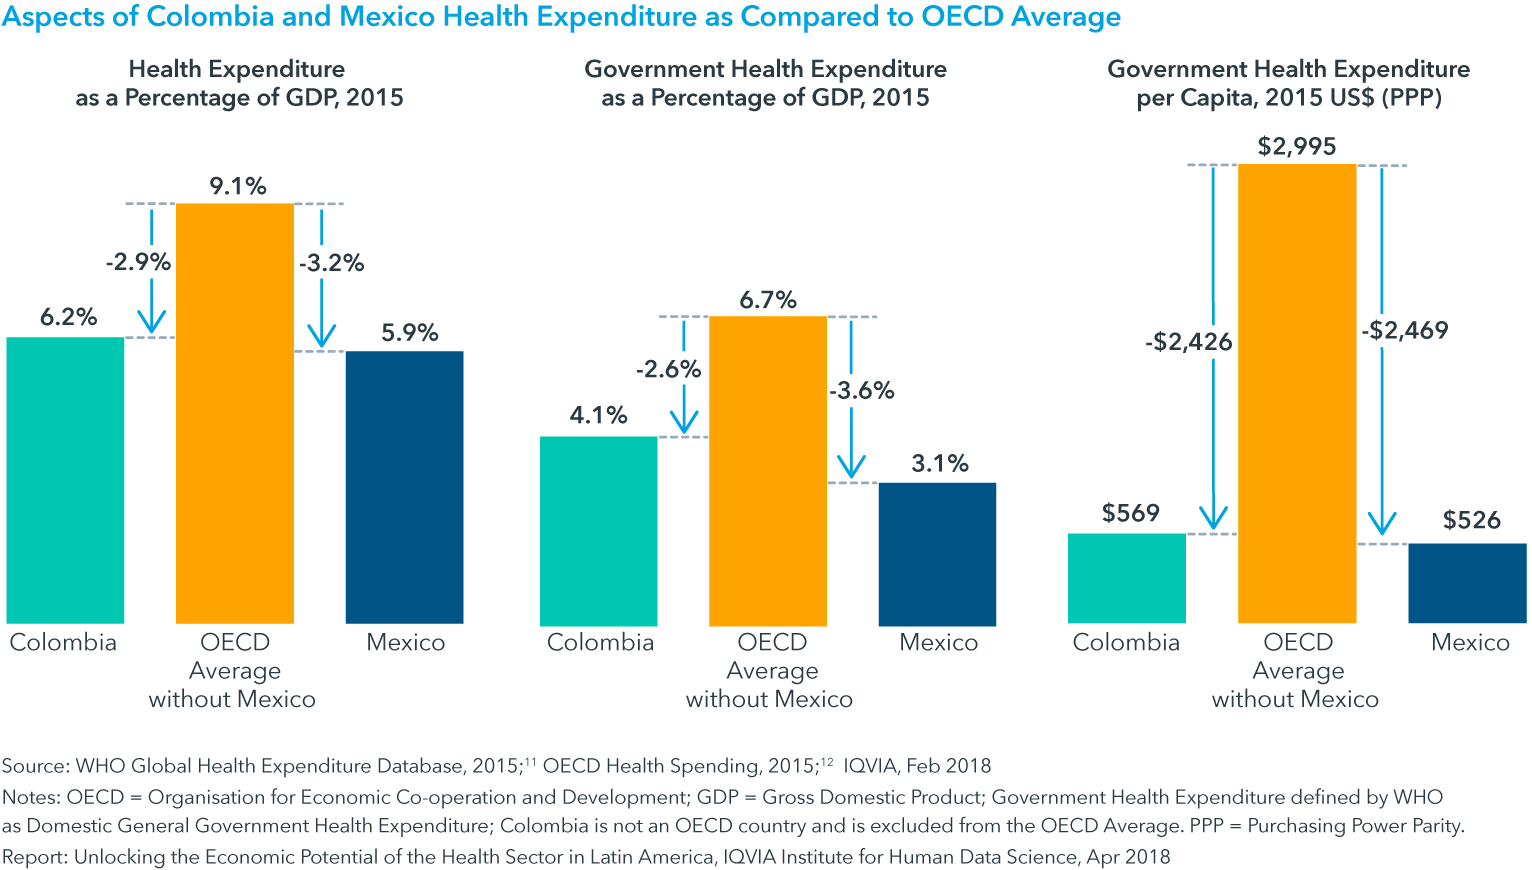 Chart 2: Aspects of Colombia and Mexico Health Expenditure as Compared to OECD Average